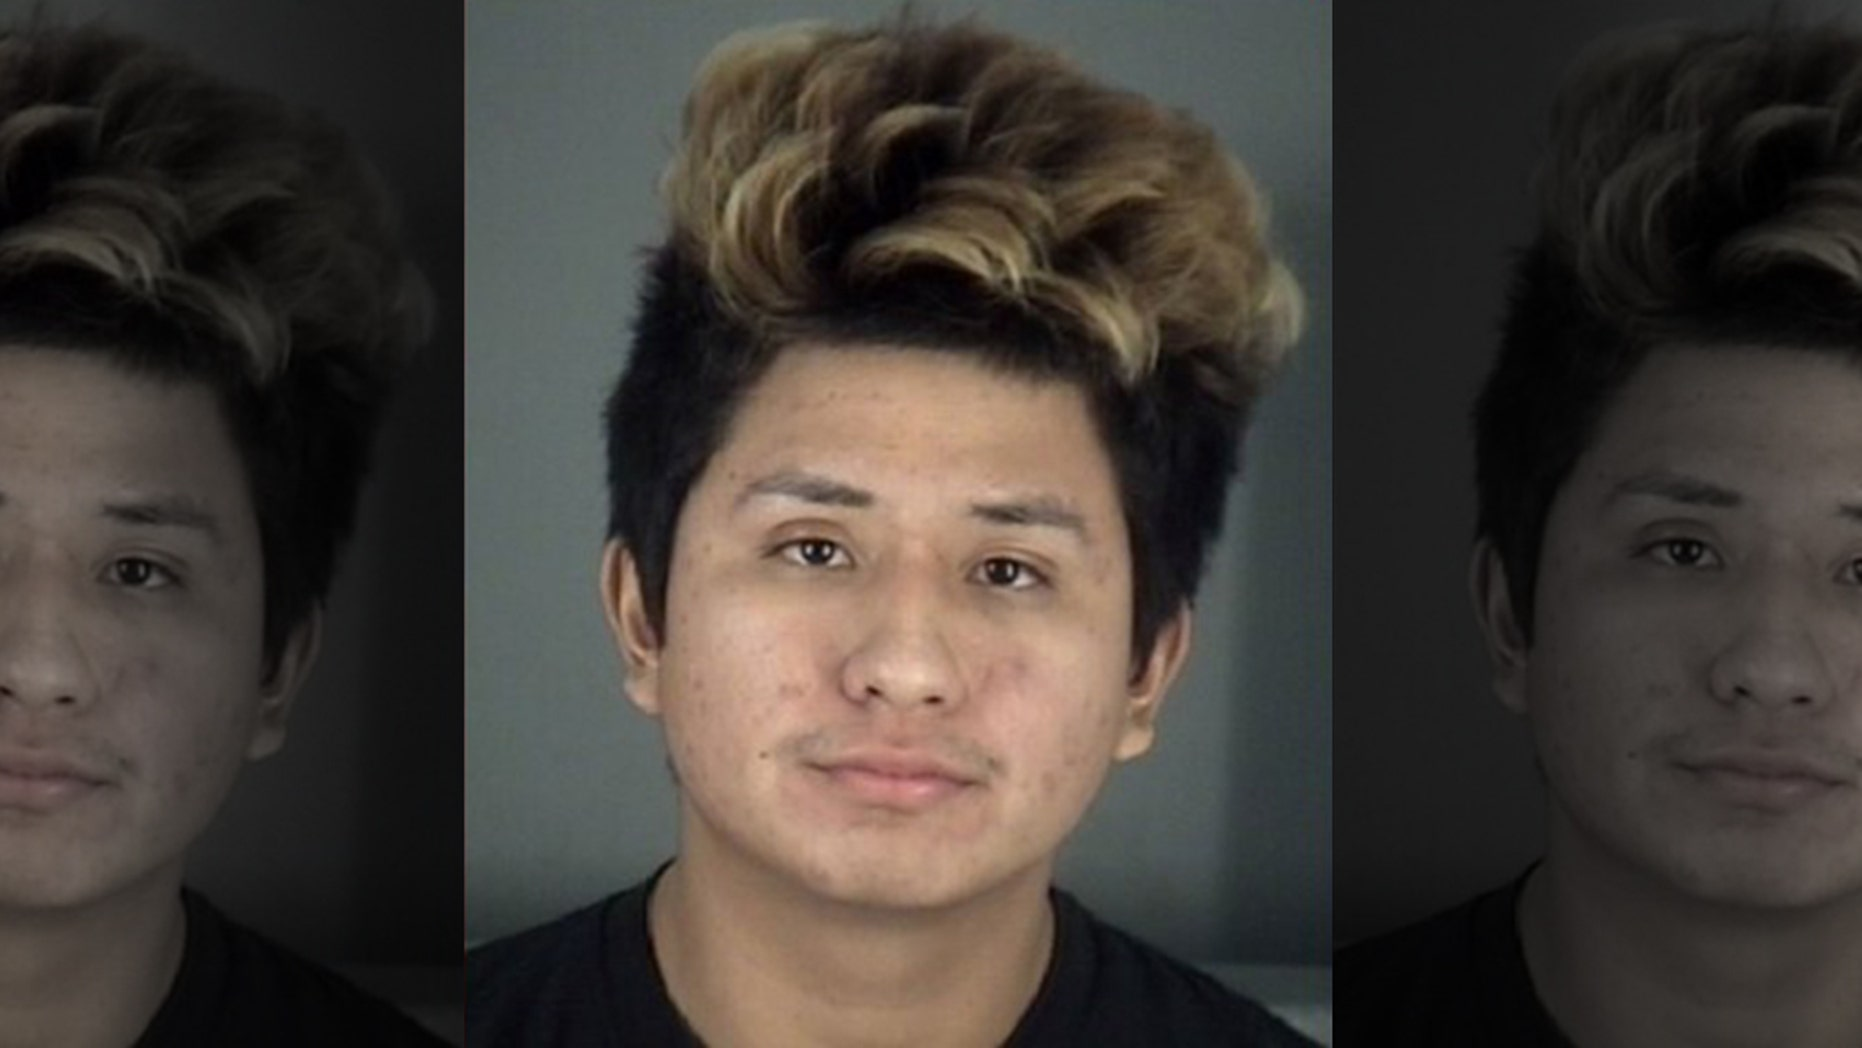 Daniel Fabian, 18, was arrested on Wednesday for allegedly raping a 15-year-old girl as he took a break from playing a video game.